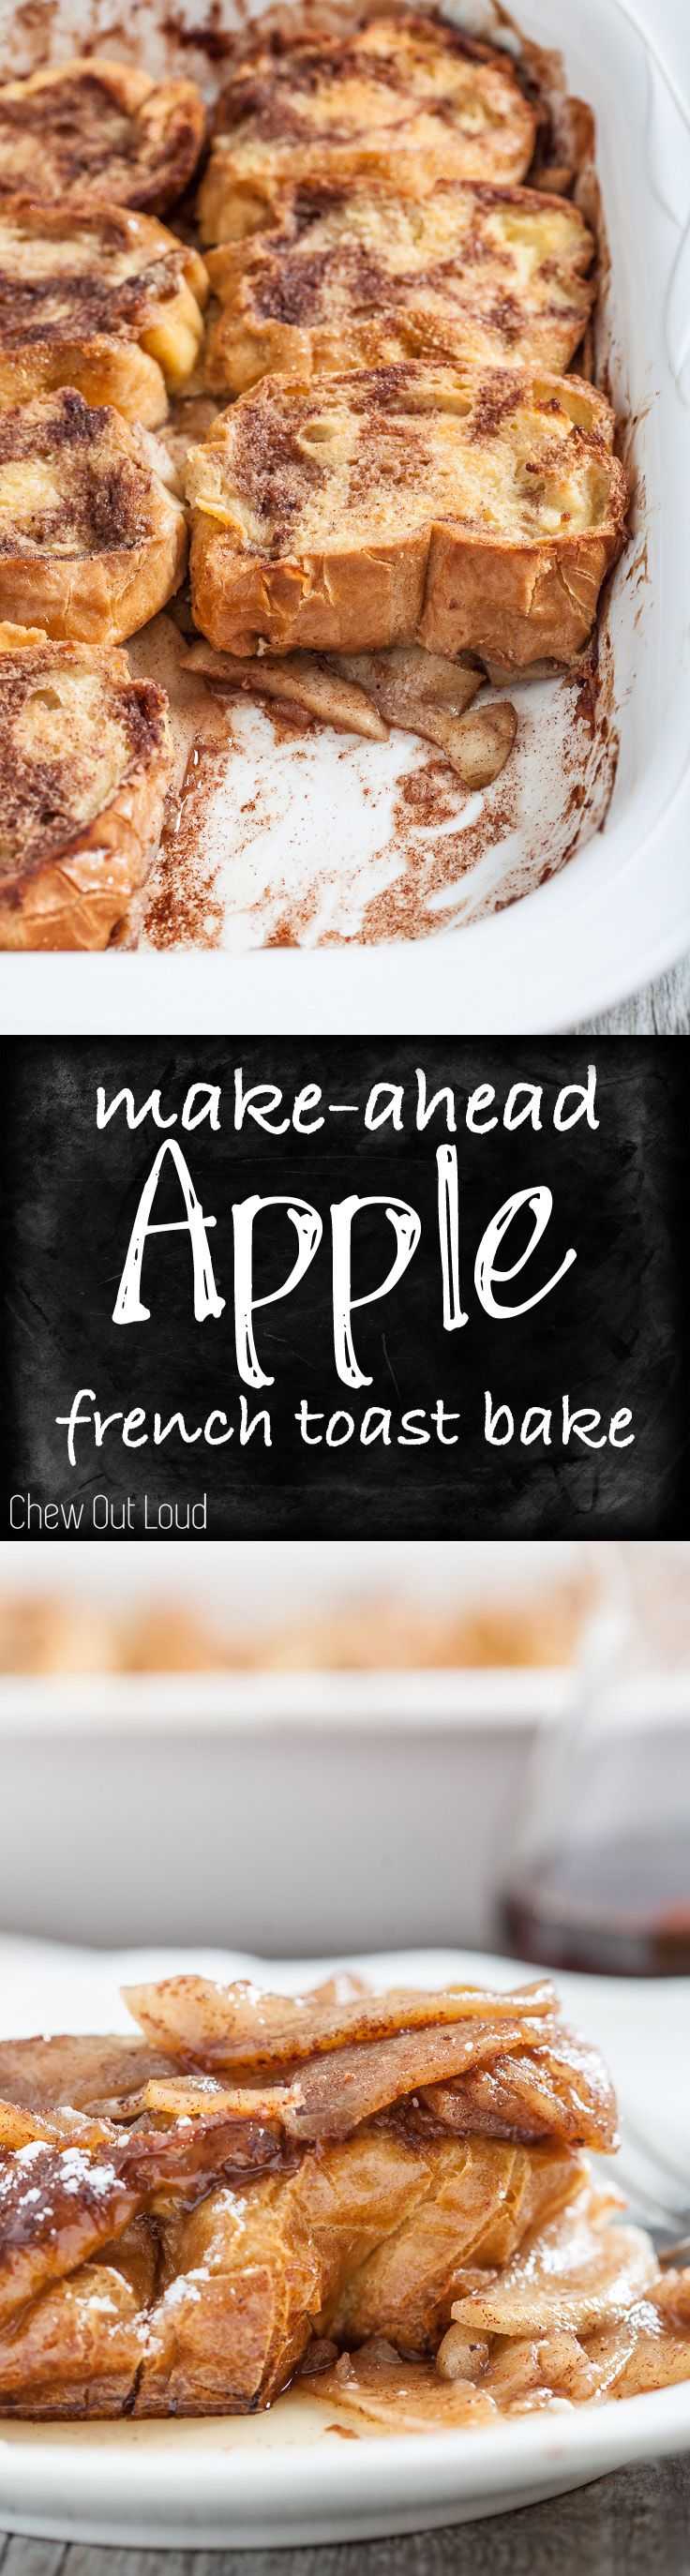 Best 25 eggs in oven ideas on pinterest denver brunch denver this upside down apple french toast bake is make ahead easy prepare it ccuart Images